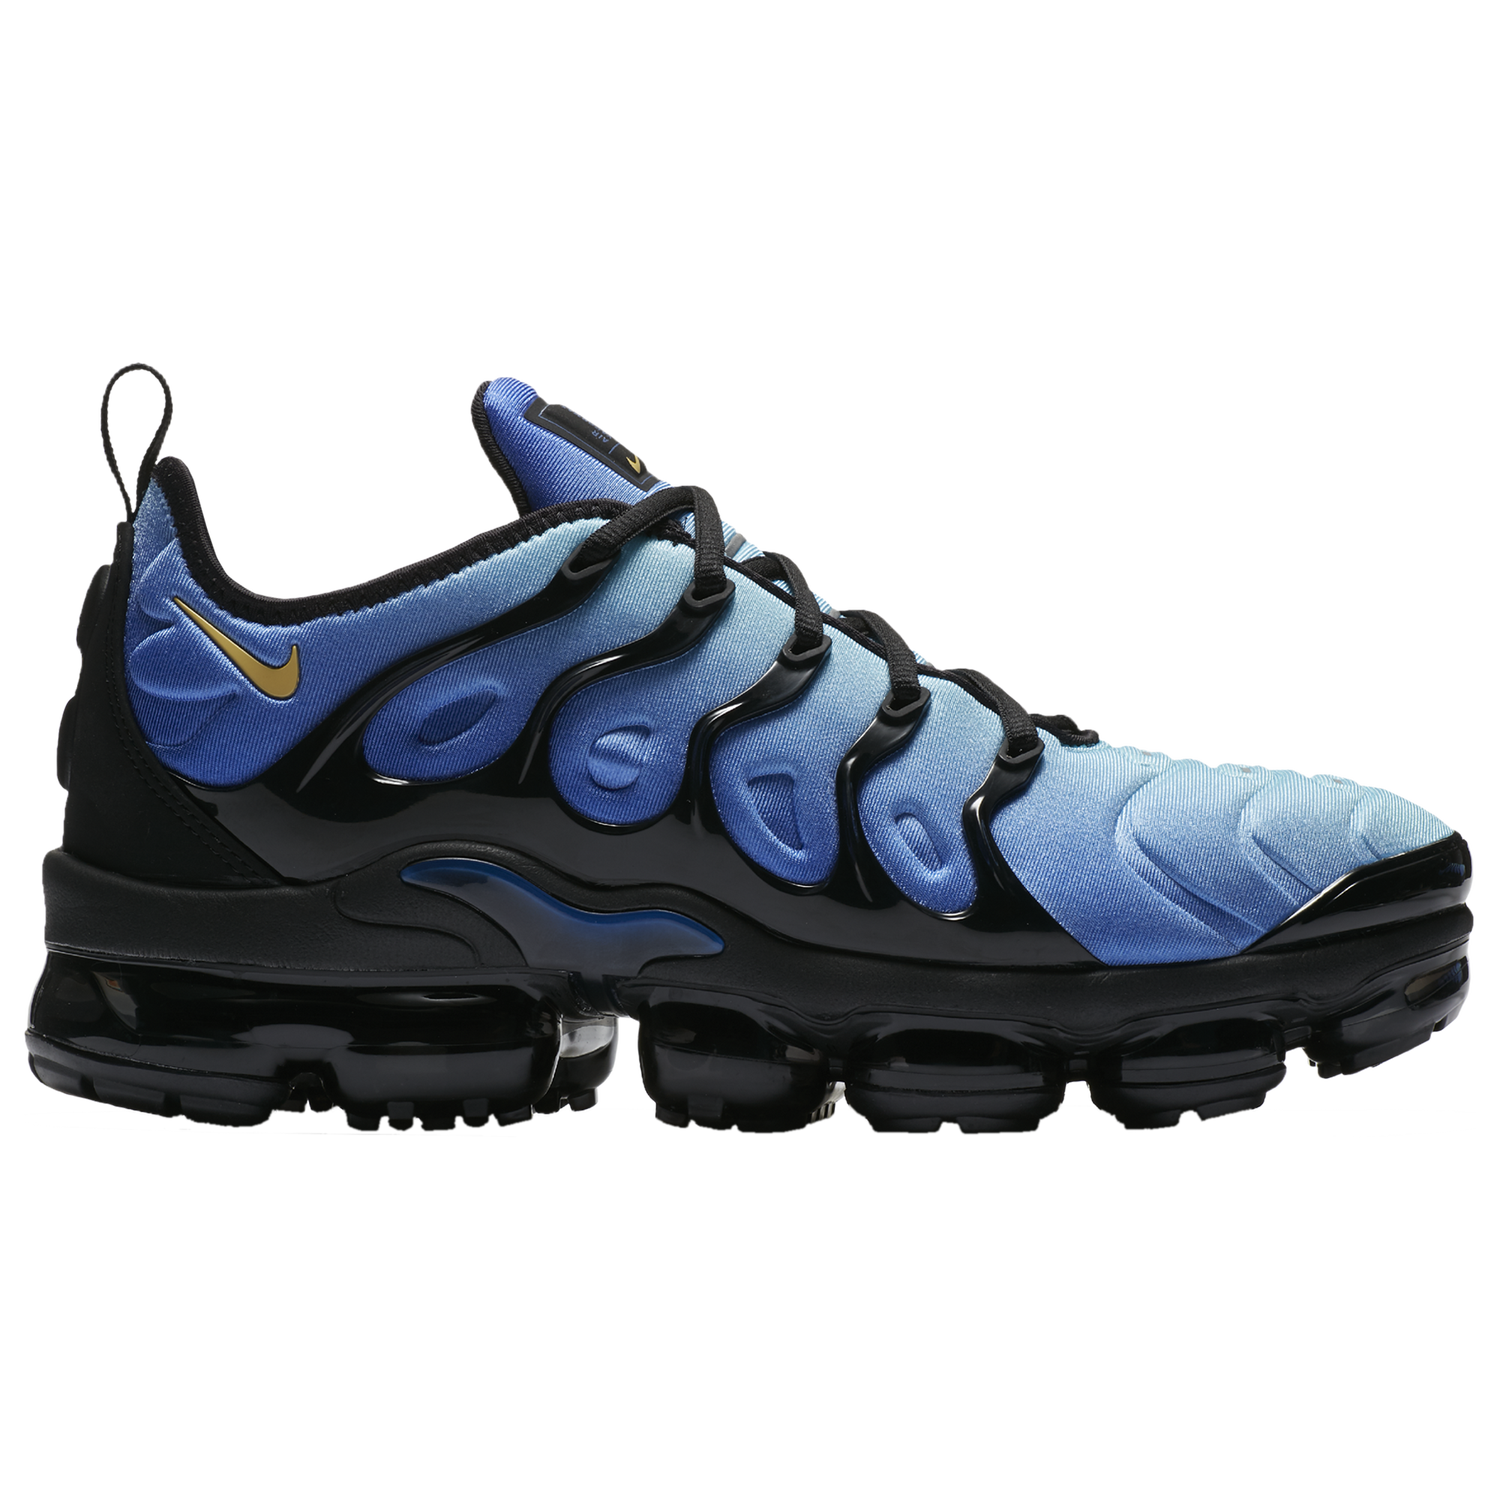 e27b9a7534b8 coupon blue black mens nike vapormax shoes 0deaf abf2e